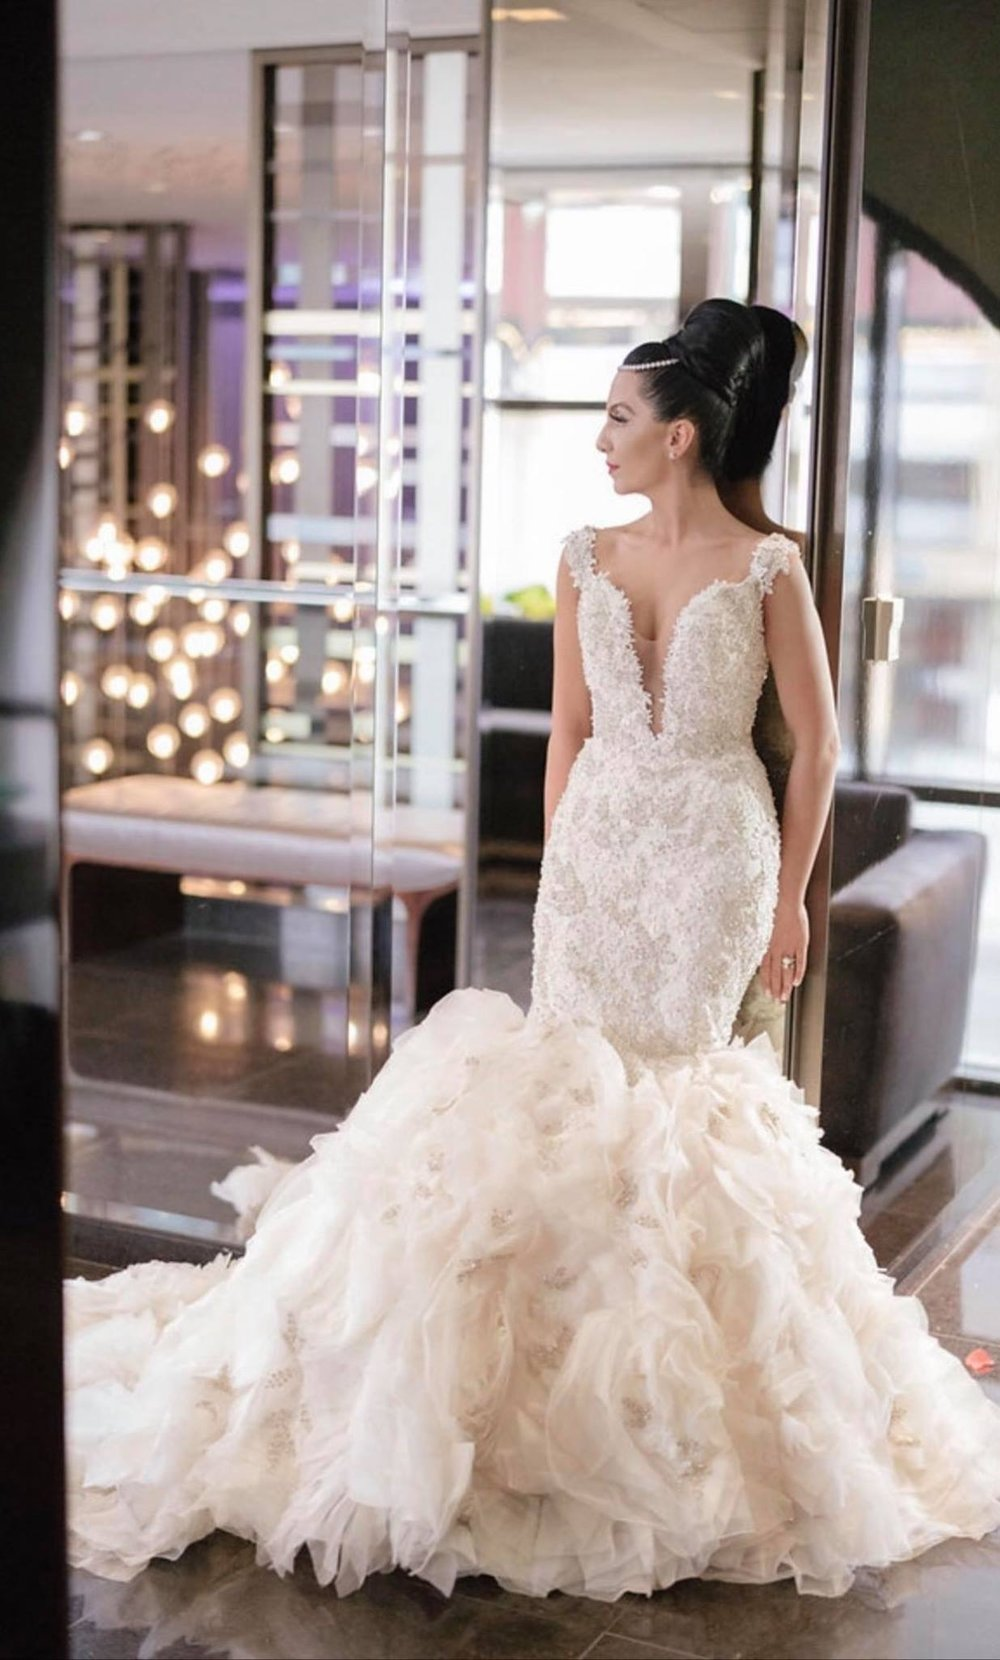 Bold and beautiful bridal gowns by designer YSA MAKINO steal the show!